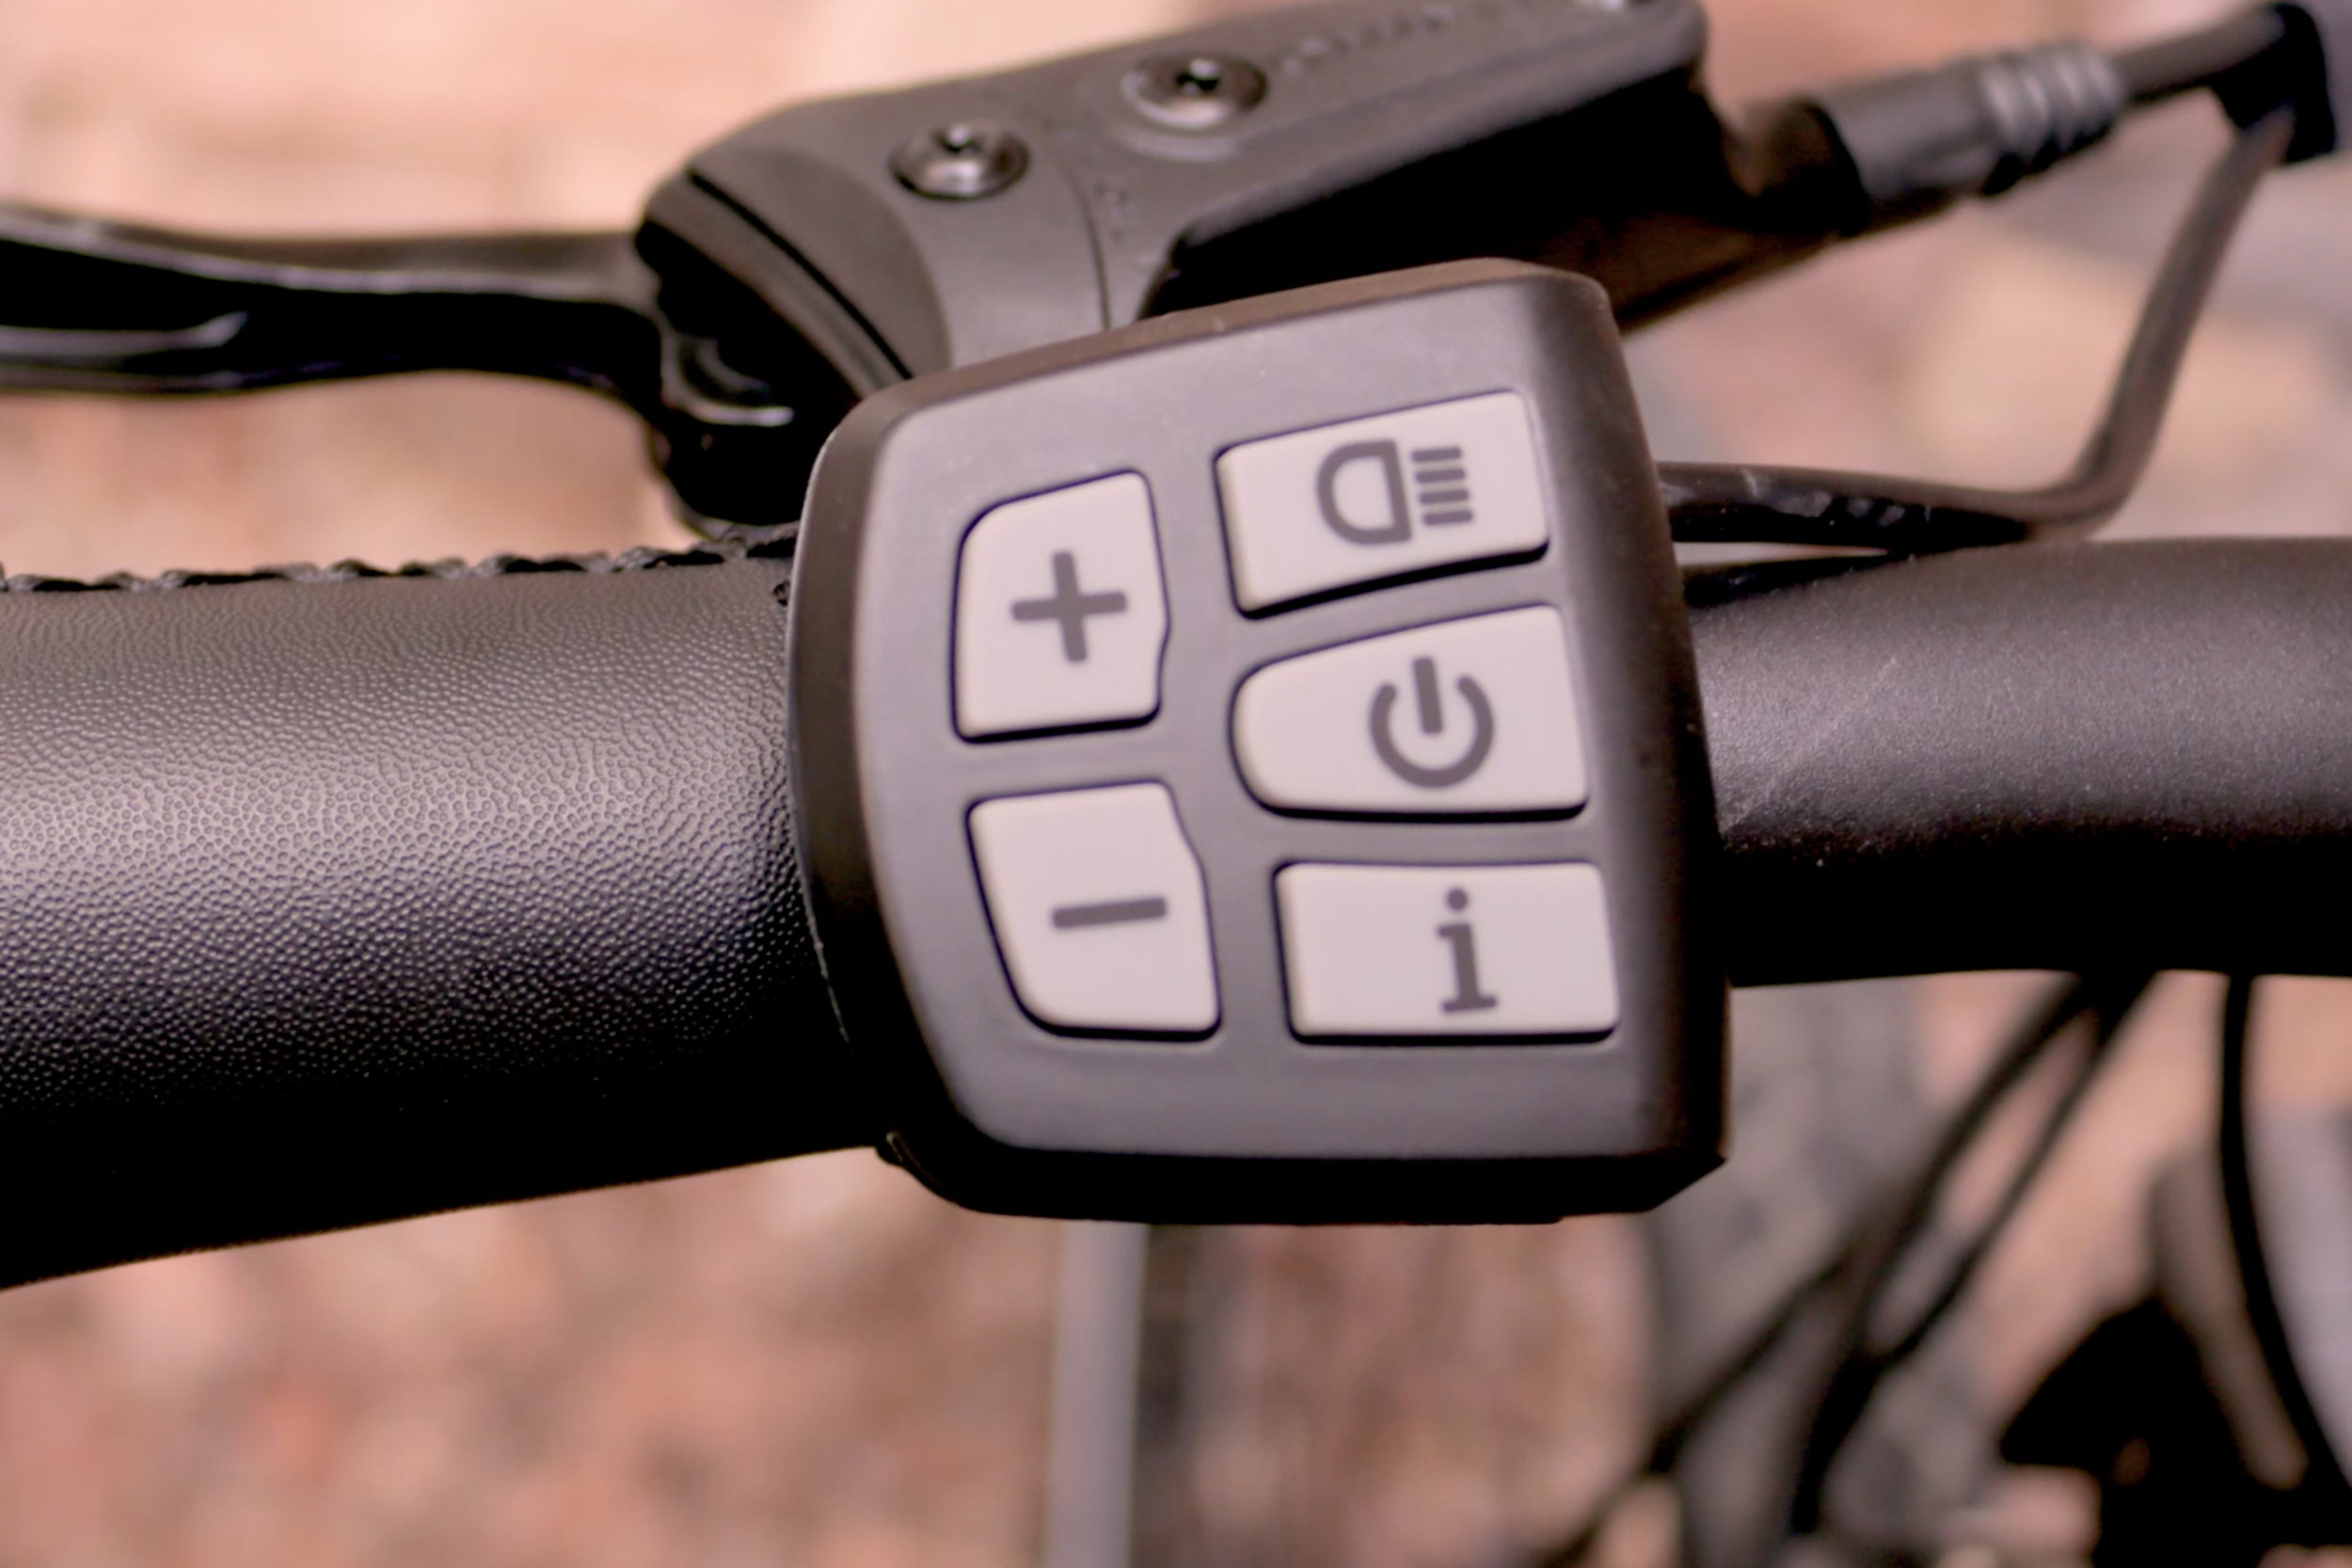 electrified-reviews-populo-scout-electric-bike-review-display-button-pad.jpg